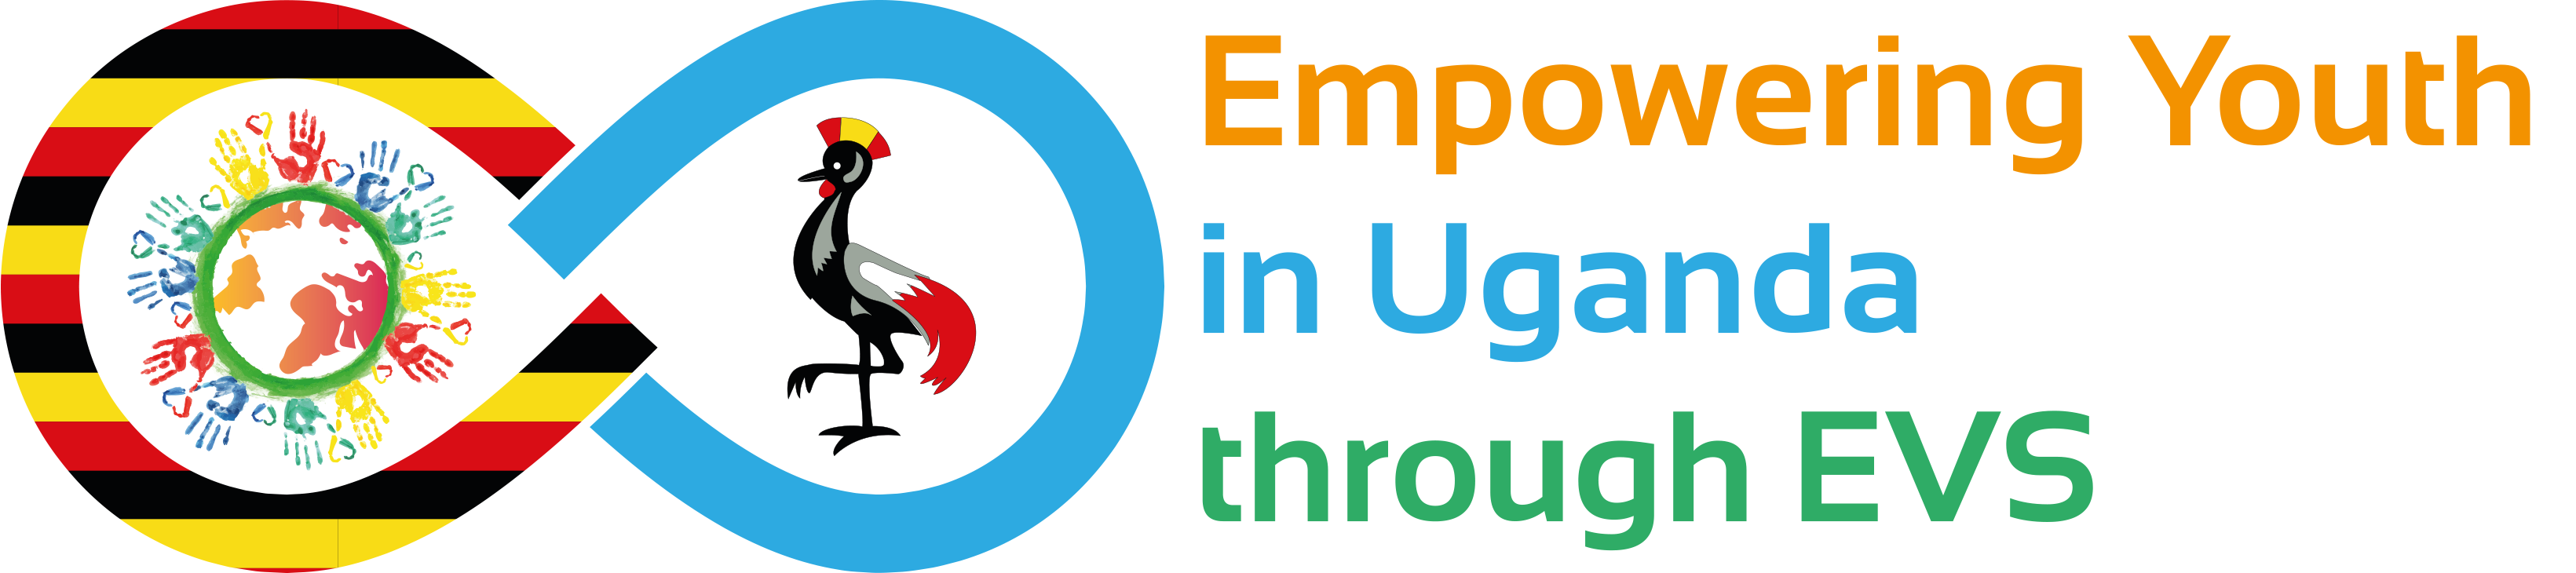 Empowering Youth with EVS in Uganda